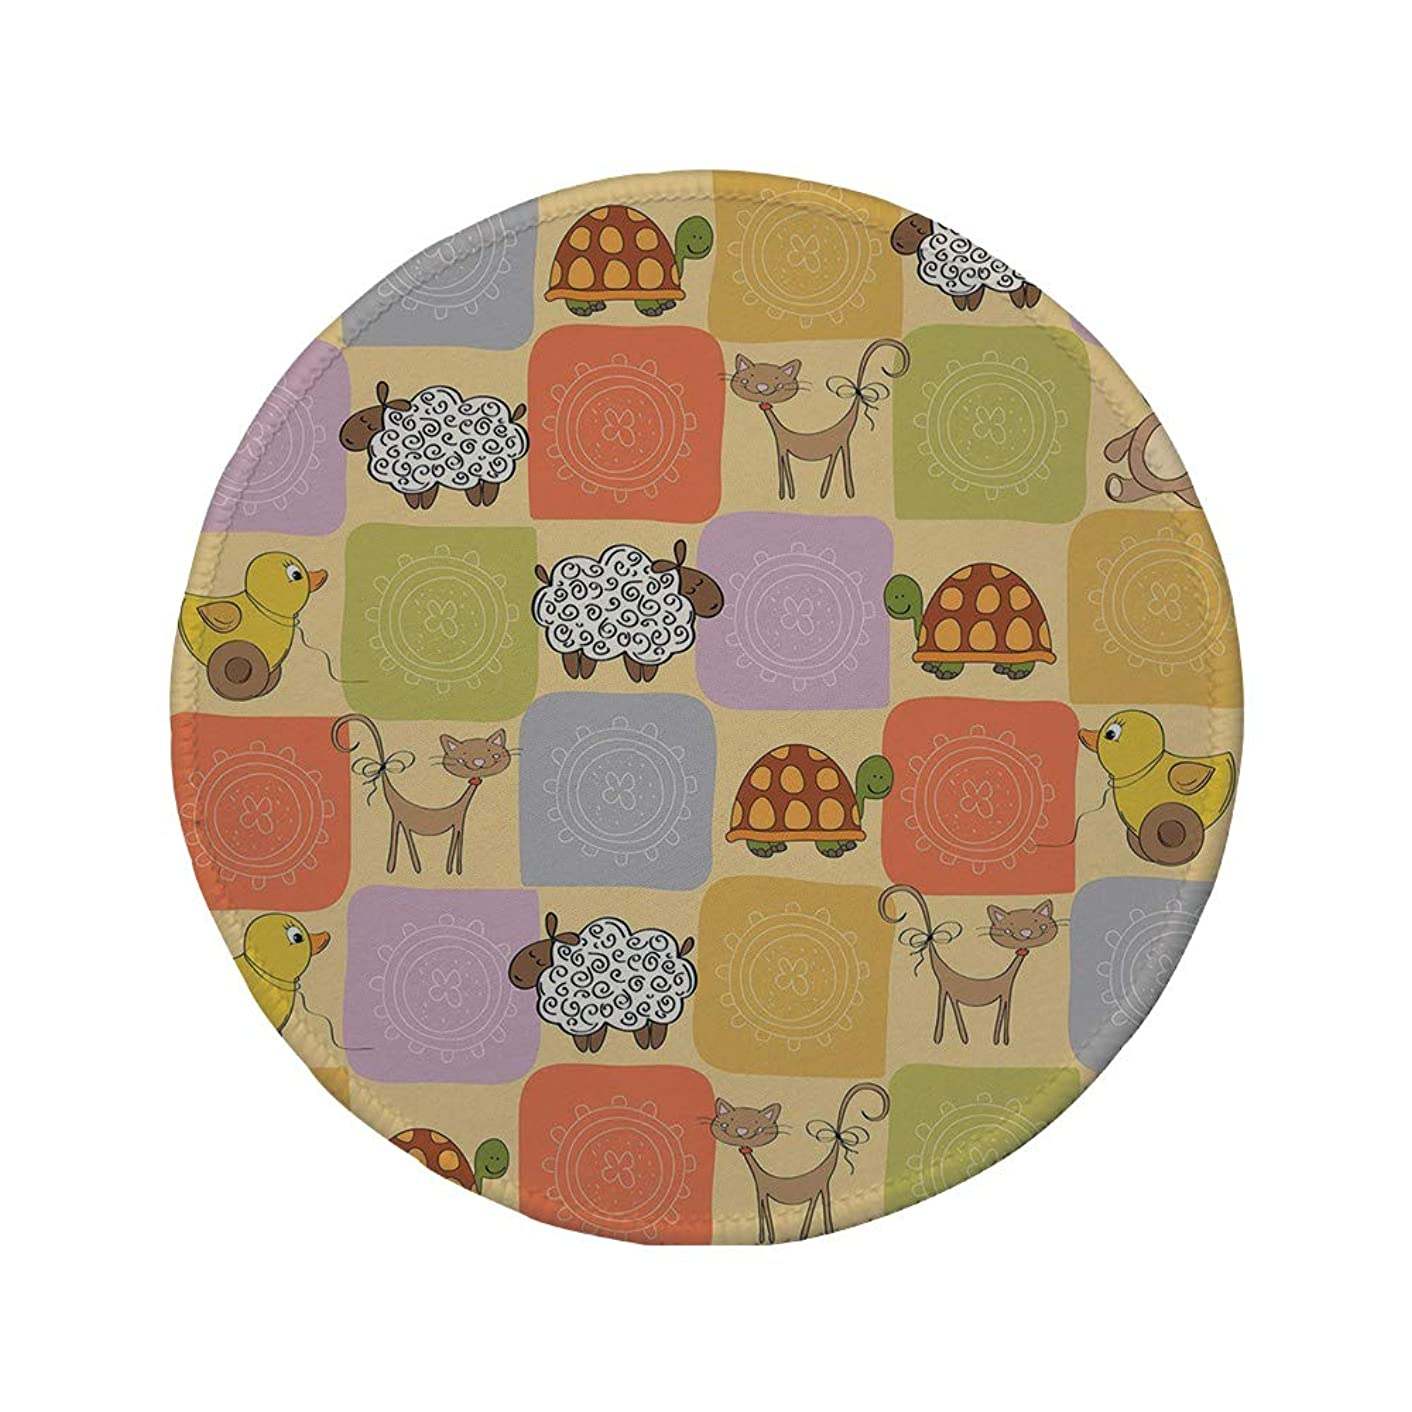 Non-Slip Rubber Round Mouse Pad,Nursery,Toys and Animals in a Checkered Background Teddy Bears Sheep Cats Duck Toys Decorative,Tan Multicolor,11.8